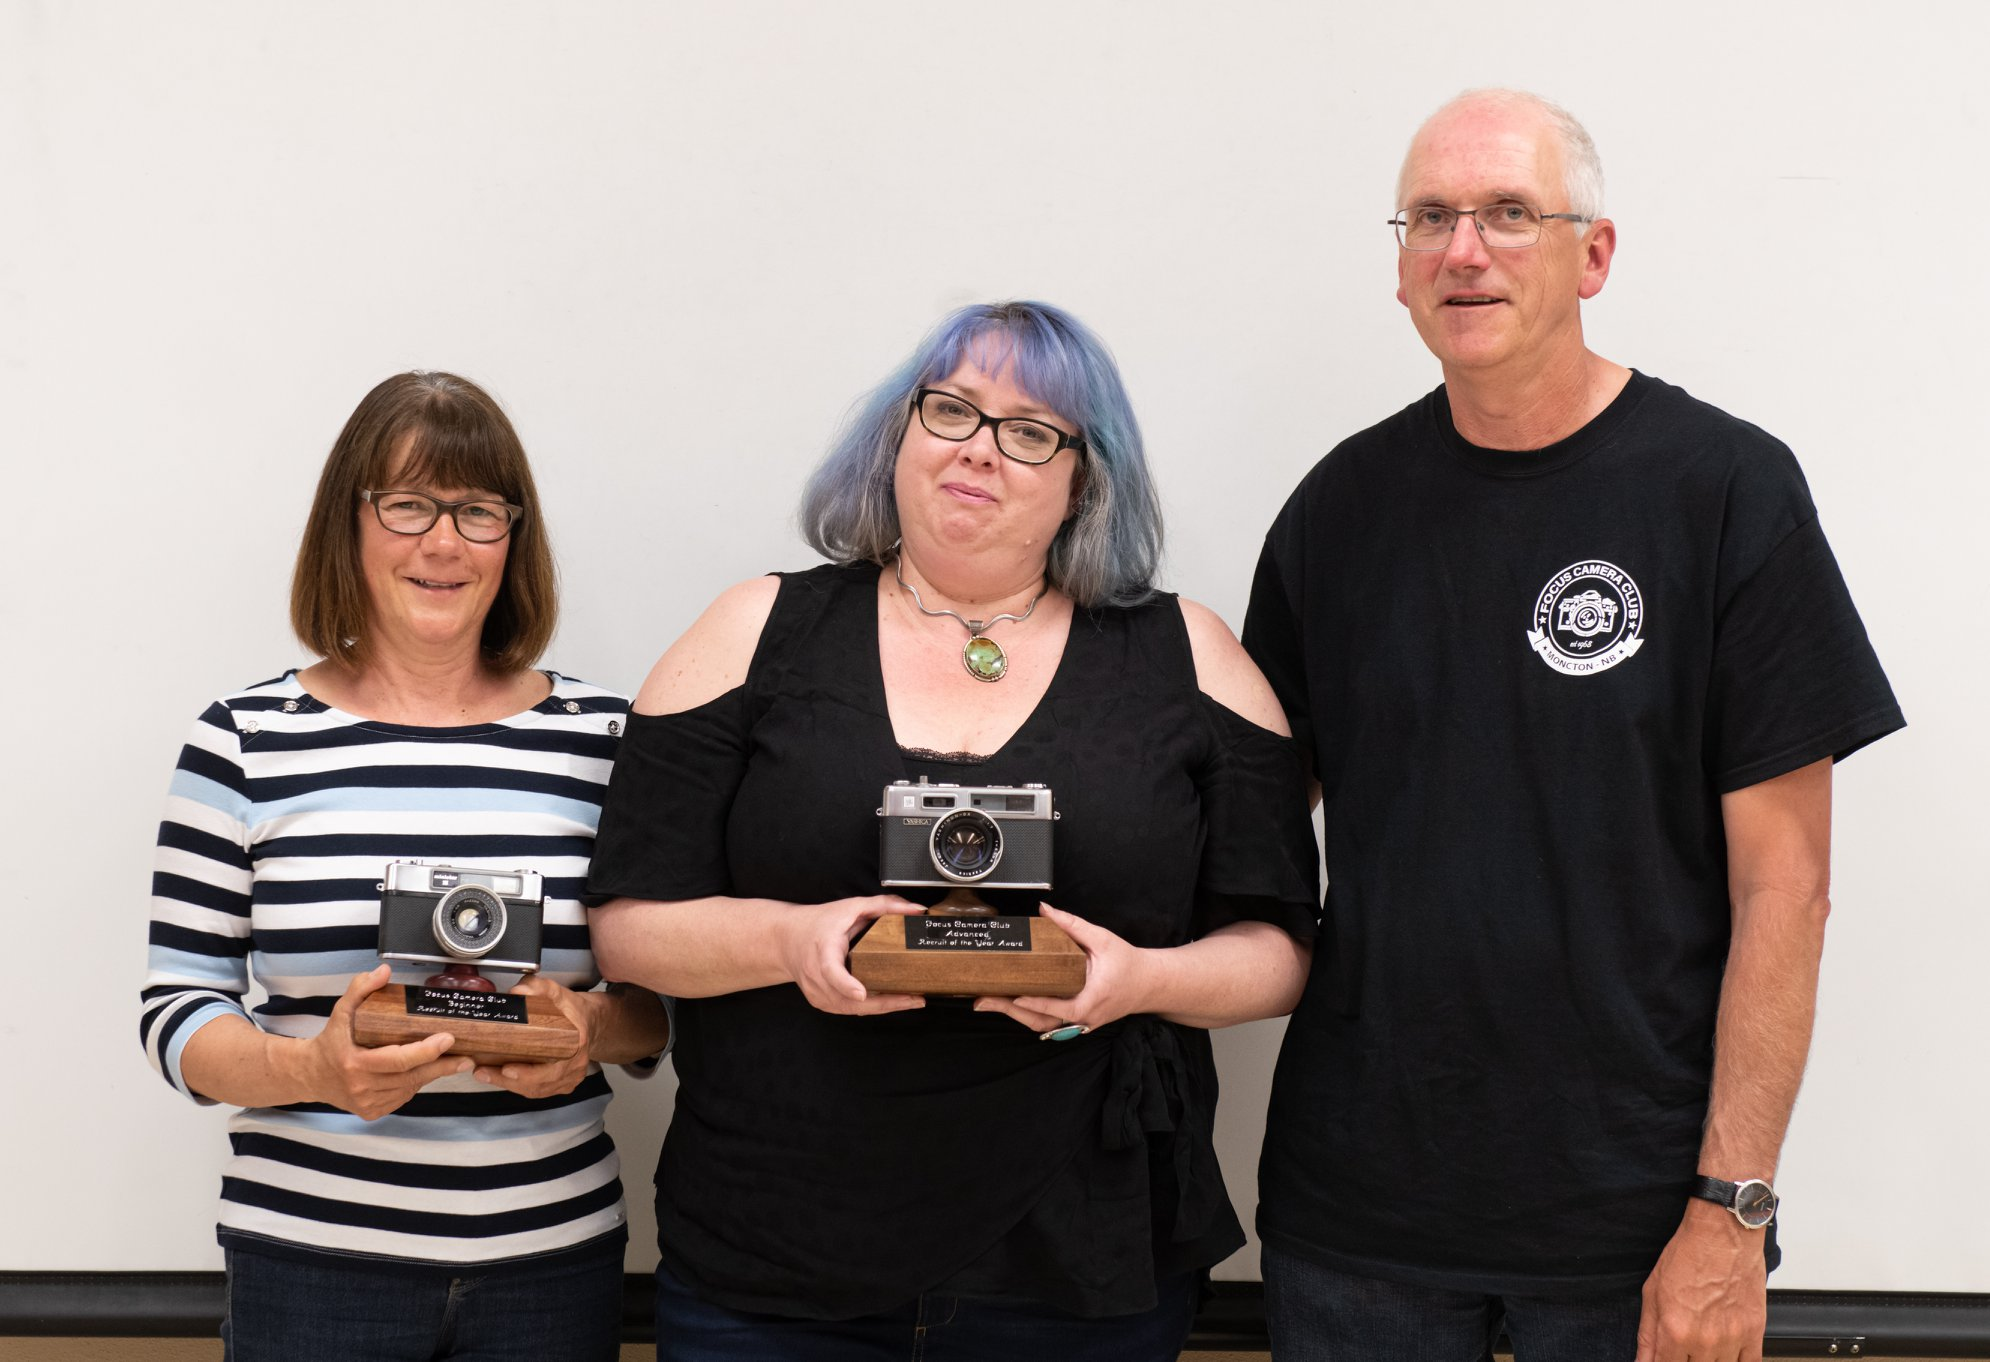 Receiving the Best New Recruit Award from the Moncton Focus Camera Club.